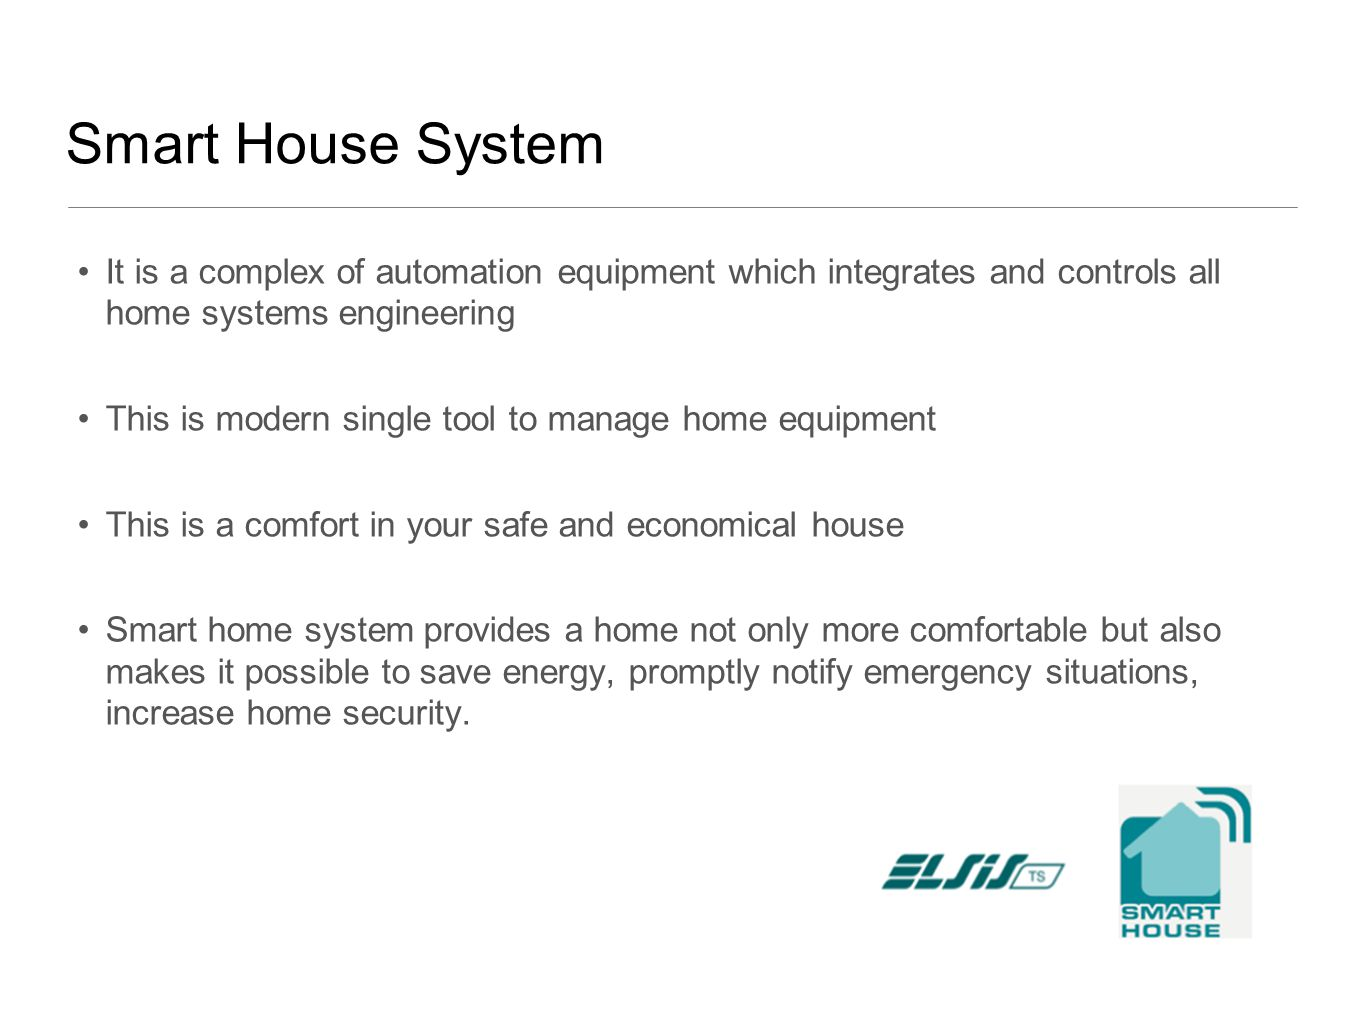 It is a complex of automation equipment which integrates and controls all home systems engineering This is modern single tool to manage home equipment This is a comfort in your safe and economical house Smart home system provides a home not only more comfortable but also makes it possible to save energy, promptly notify emergency situations, increase home security.